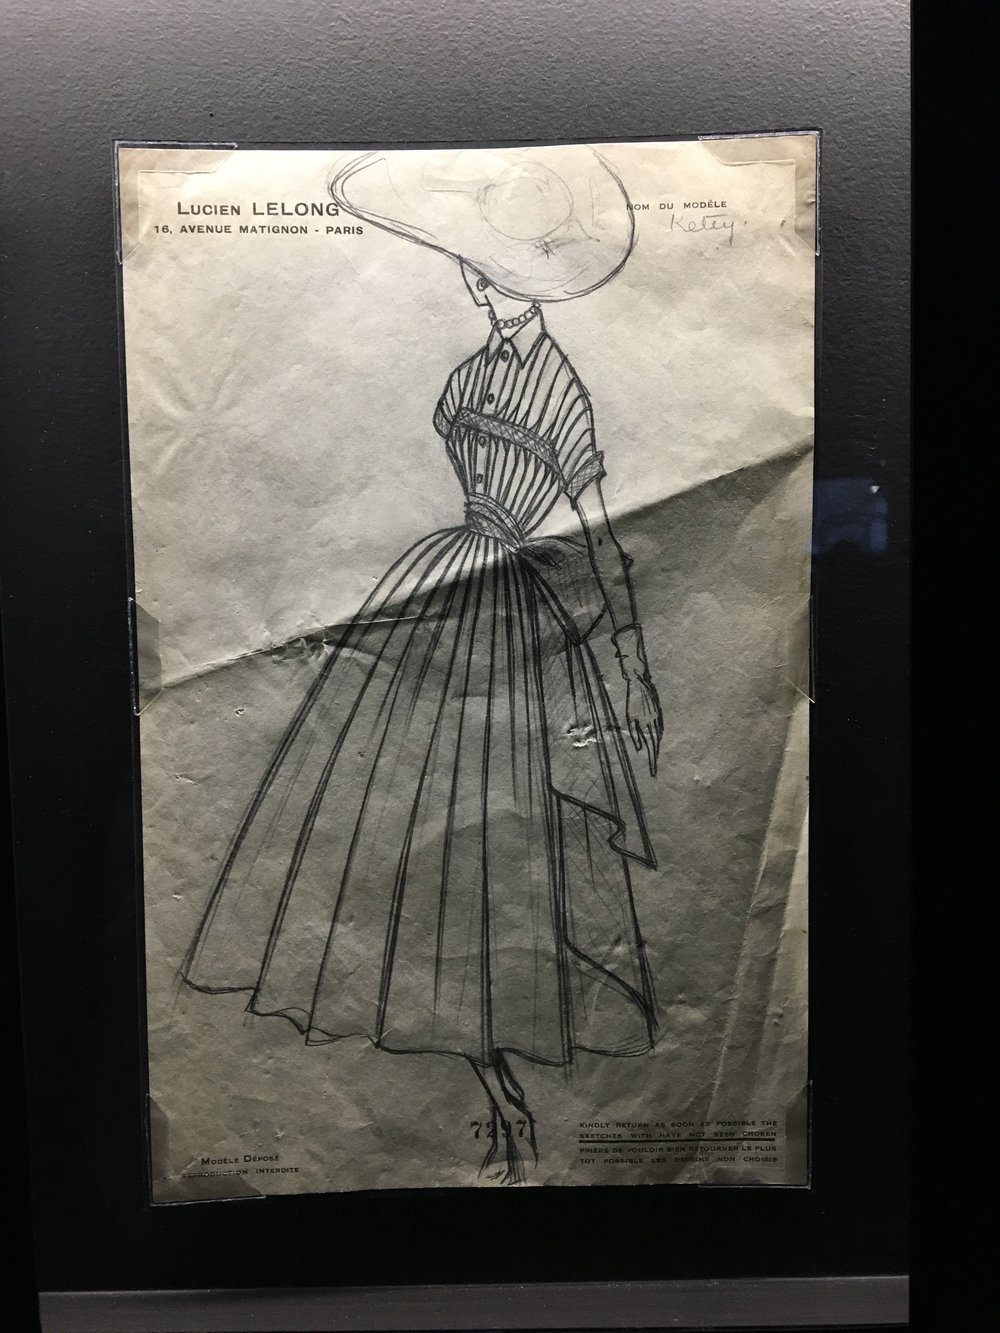 Sketch by Christian Dior for Lucien Lelong, c. 1942.